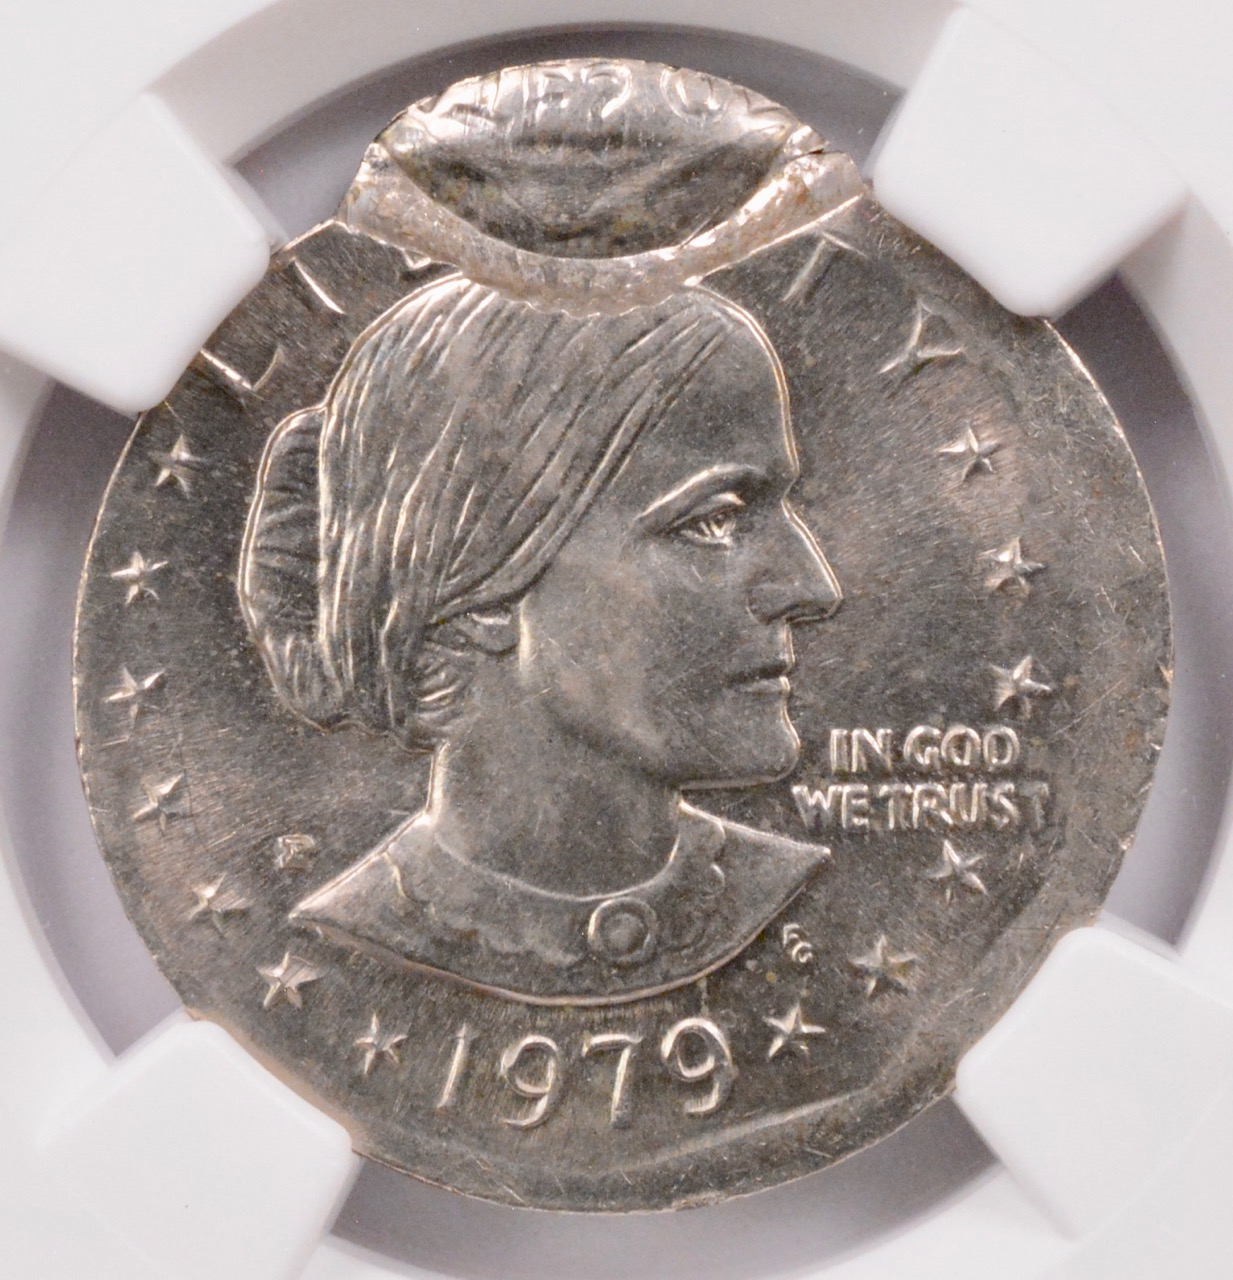 NGC $1 1979-P SBA on Quarter Planchet & 5% Partial Brockage